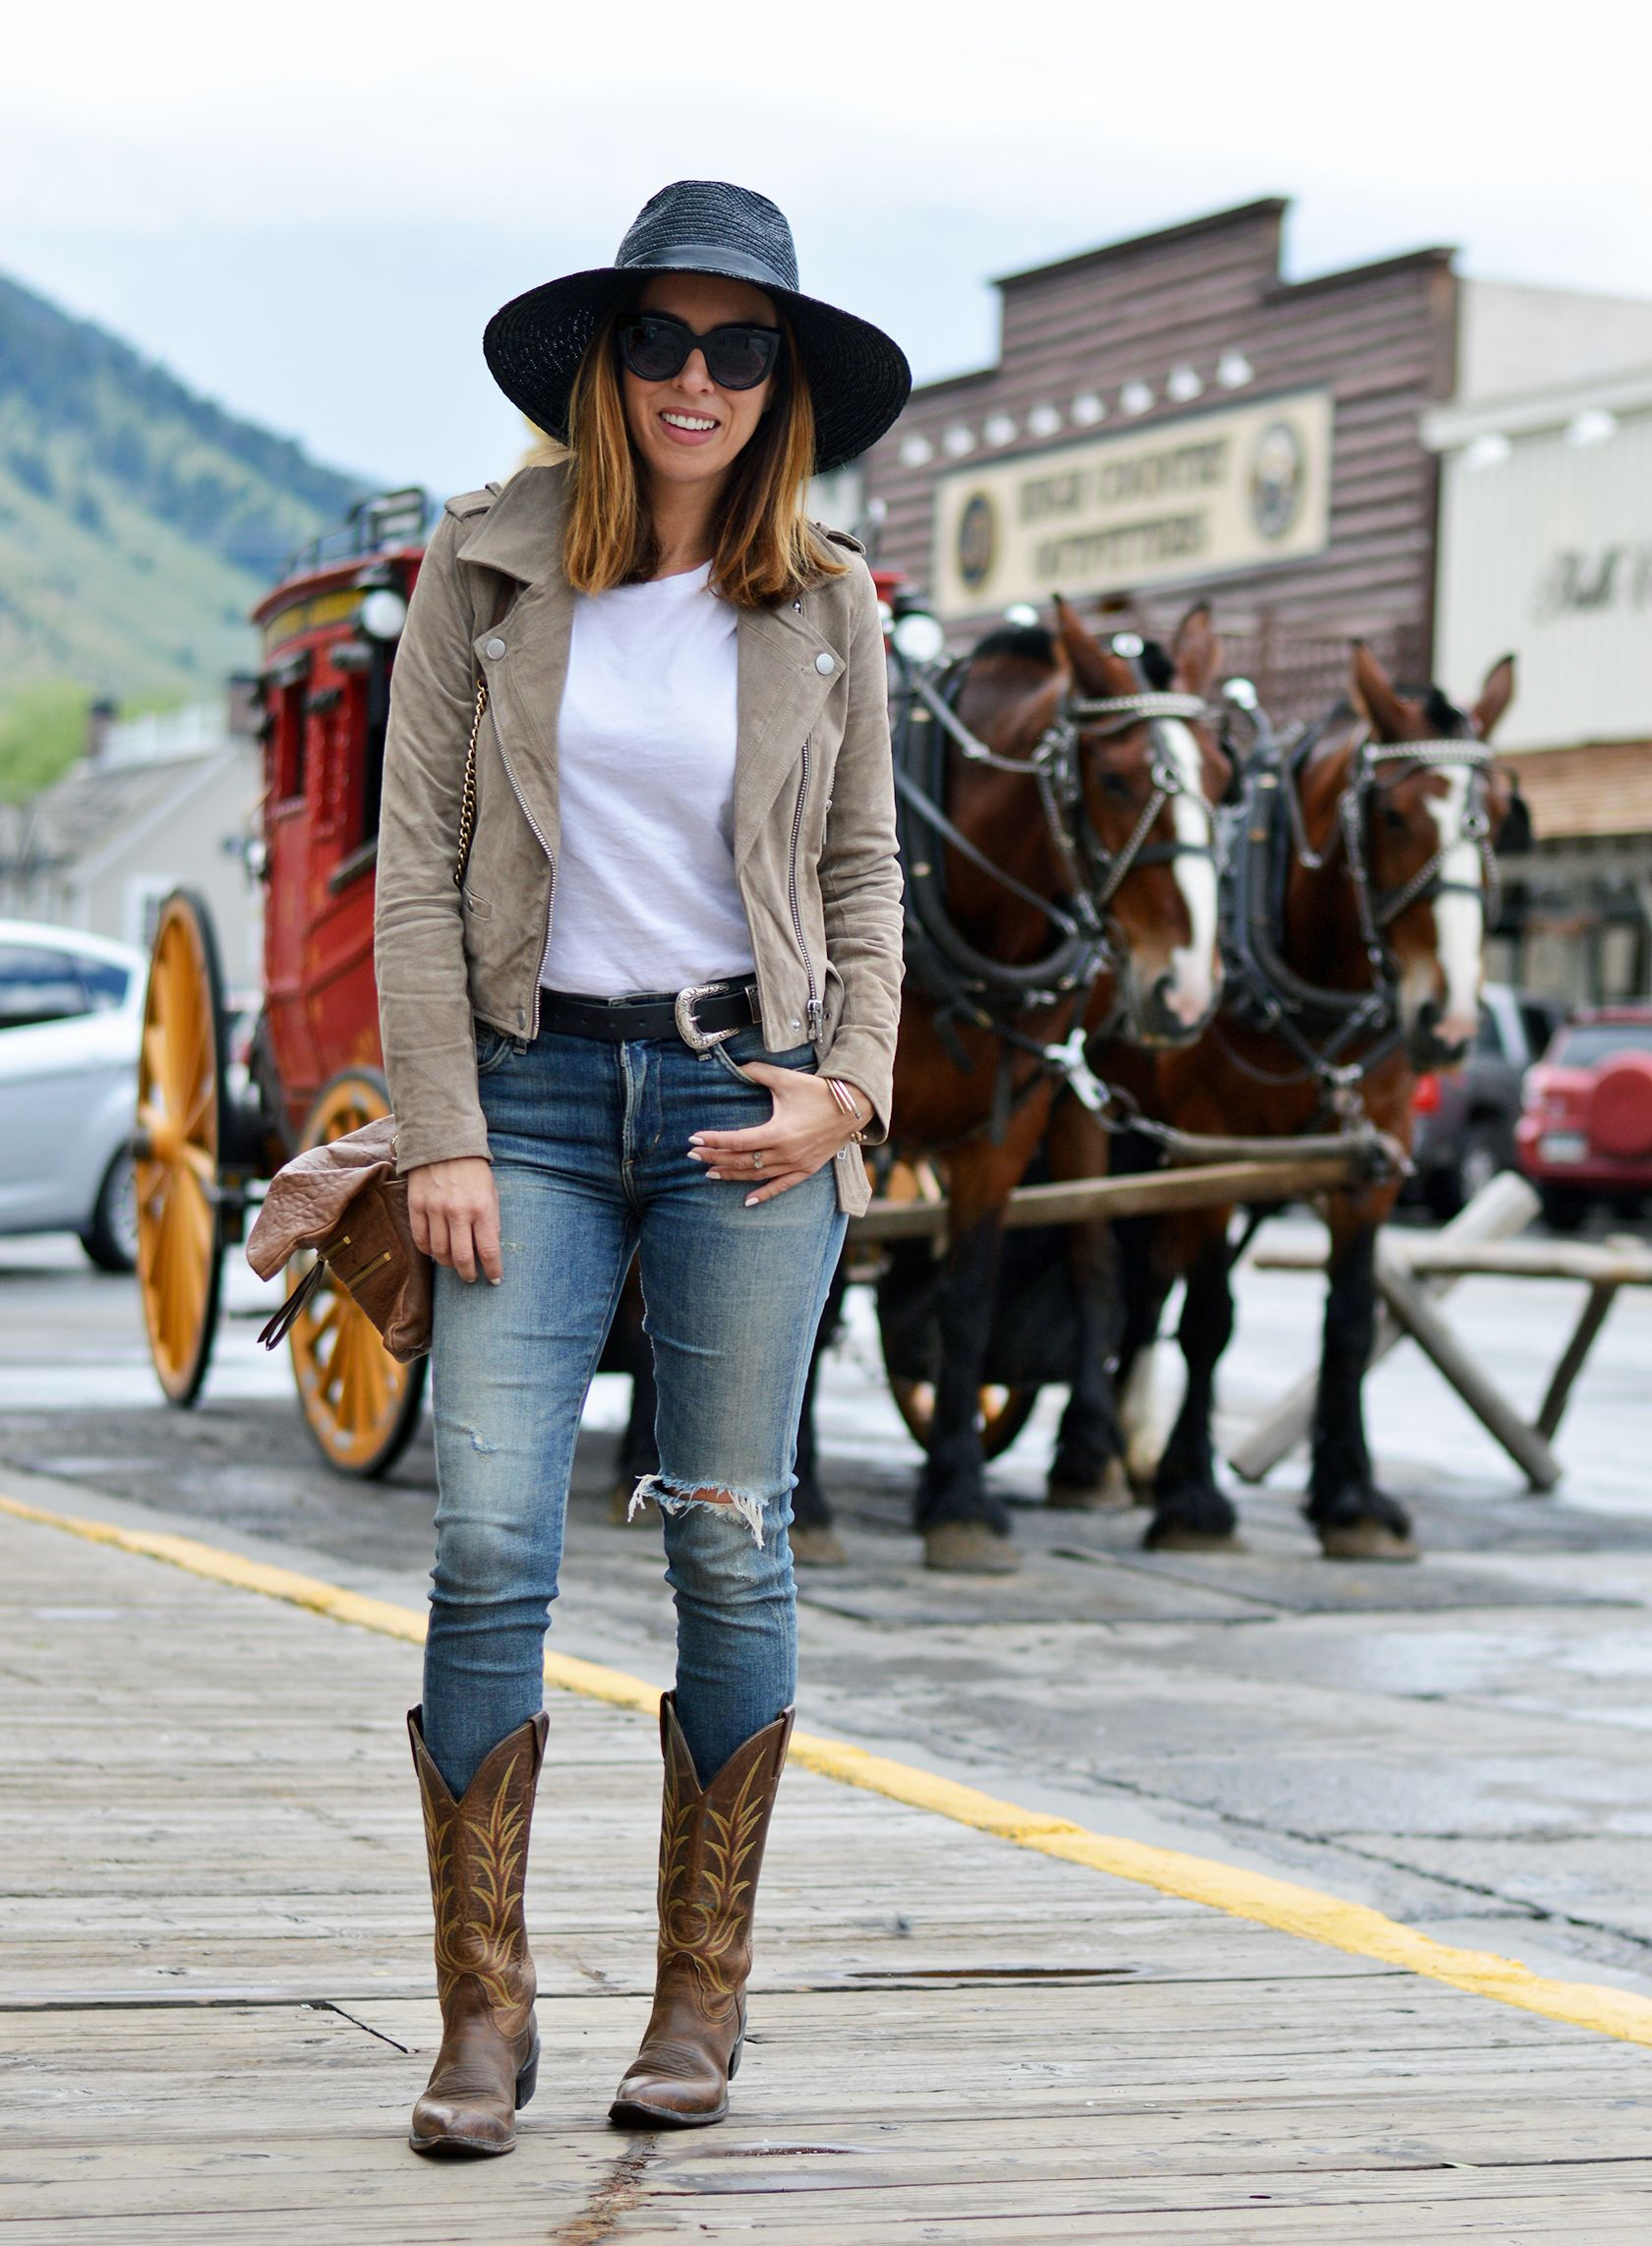 Joggers and Cowboy Boots - Try Cute Dresses to Wear With Cowboy Boots